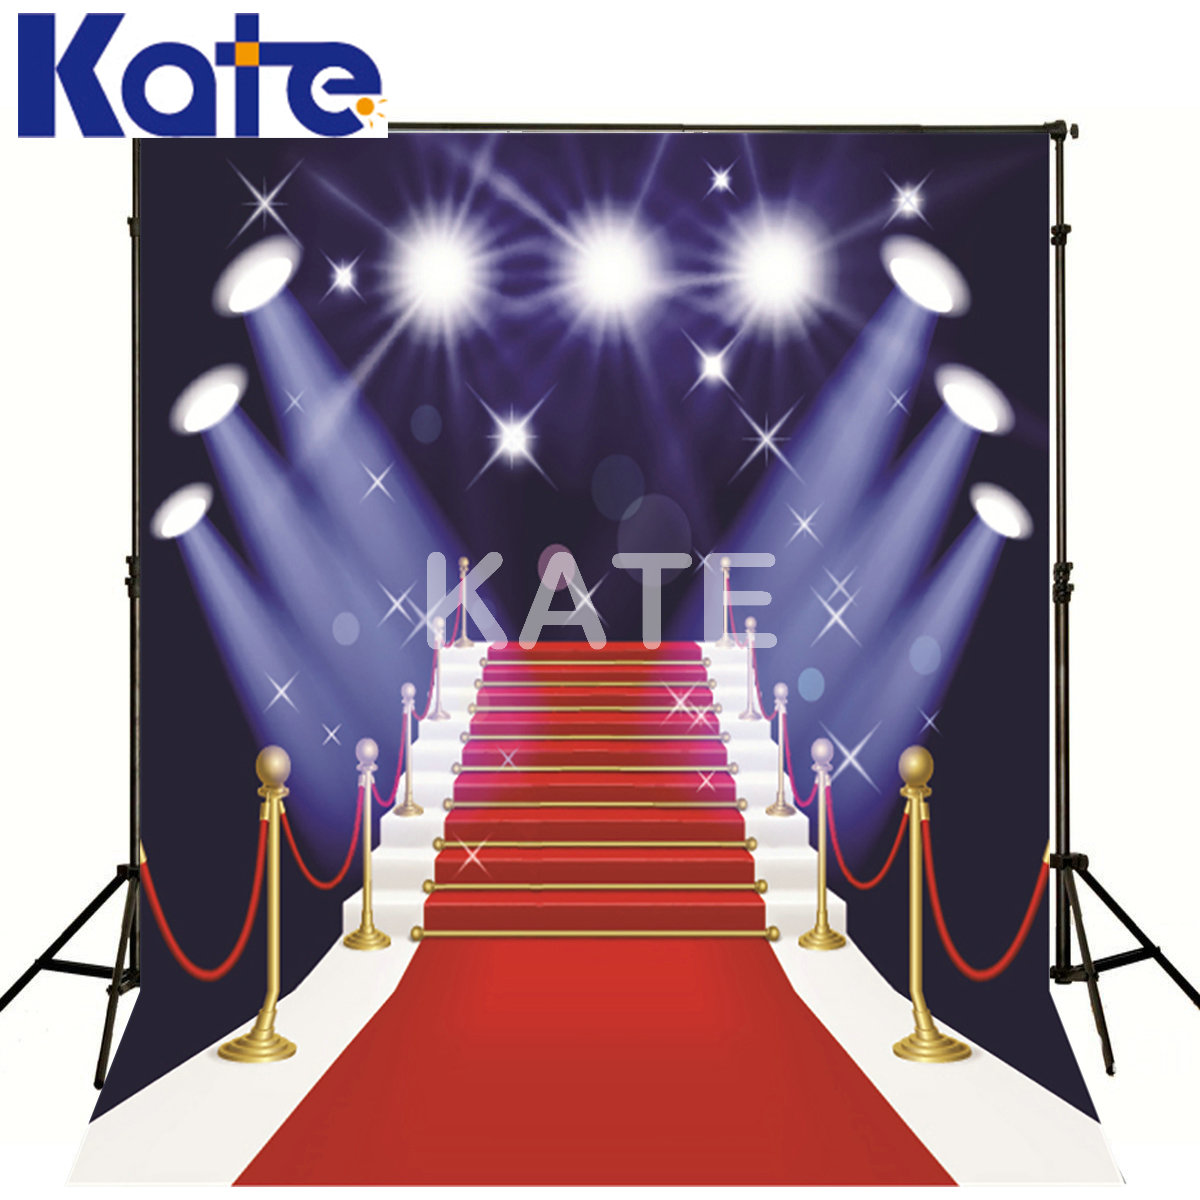 Kate Blue Photography Backdrops Photo Camera Carpet Ladder Stage Lighting Photo Background Photography Backdrop Red Wedding kate 10ft photo background naturism children photos flores wedding backdrops oil painting garden backdrop kids blue sea backdrop